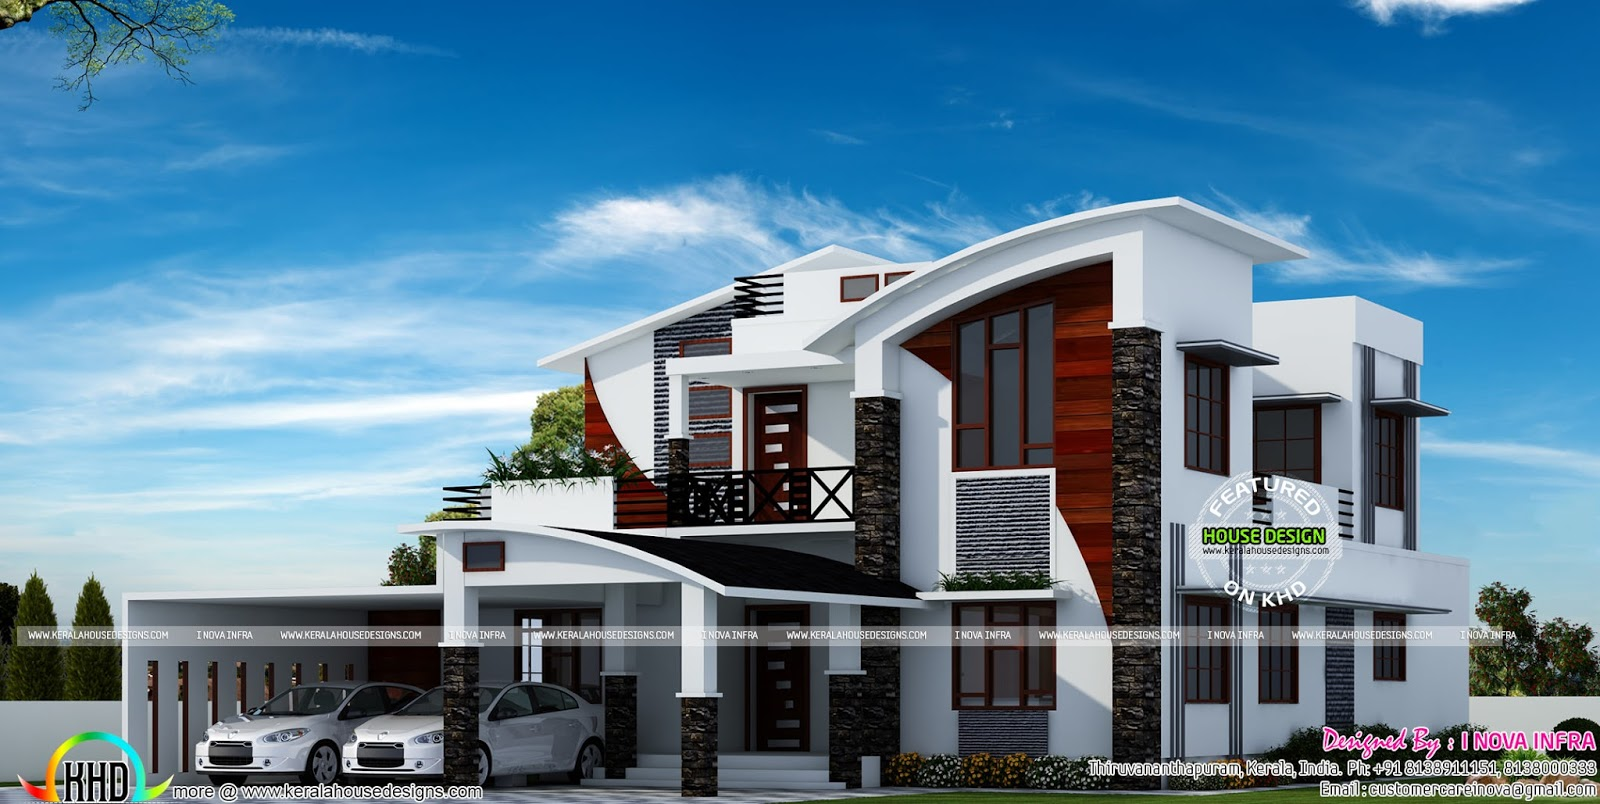 Contemporary model curved roof house kerala home design for Curved roof house plans